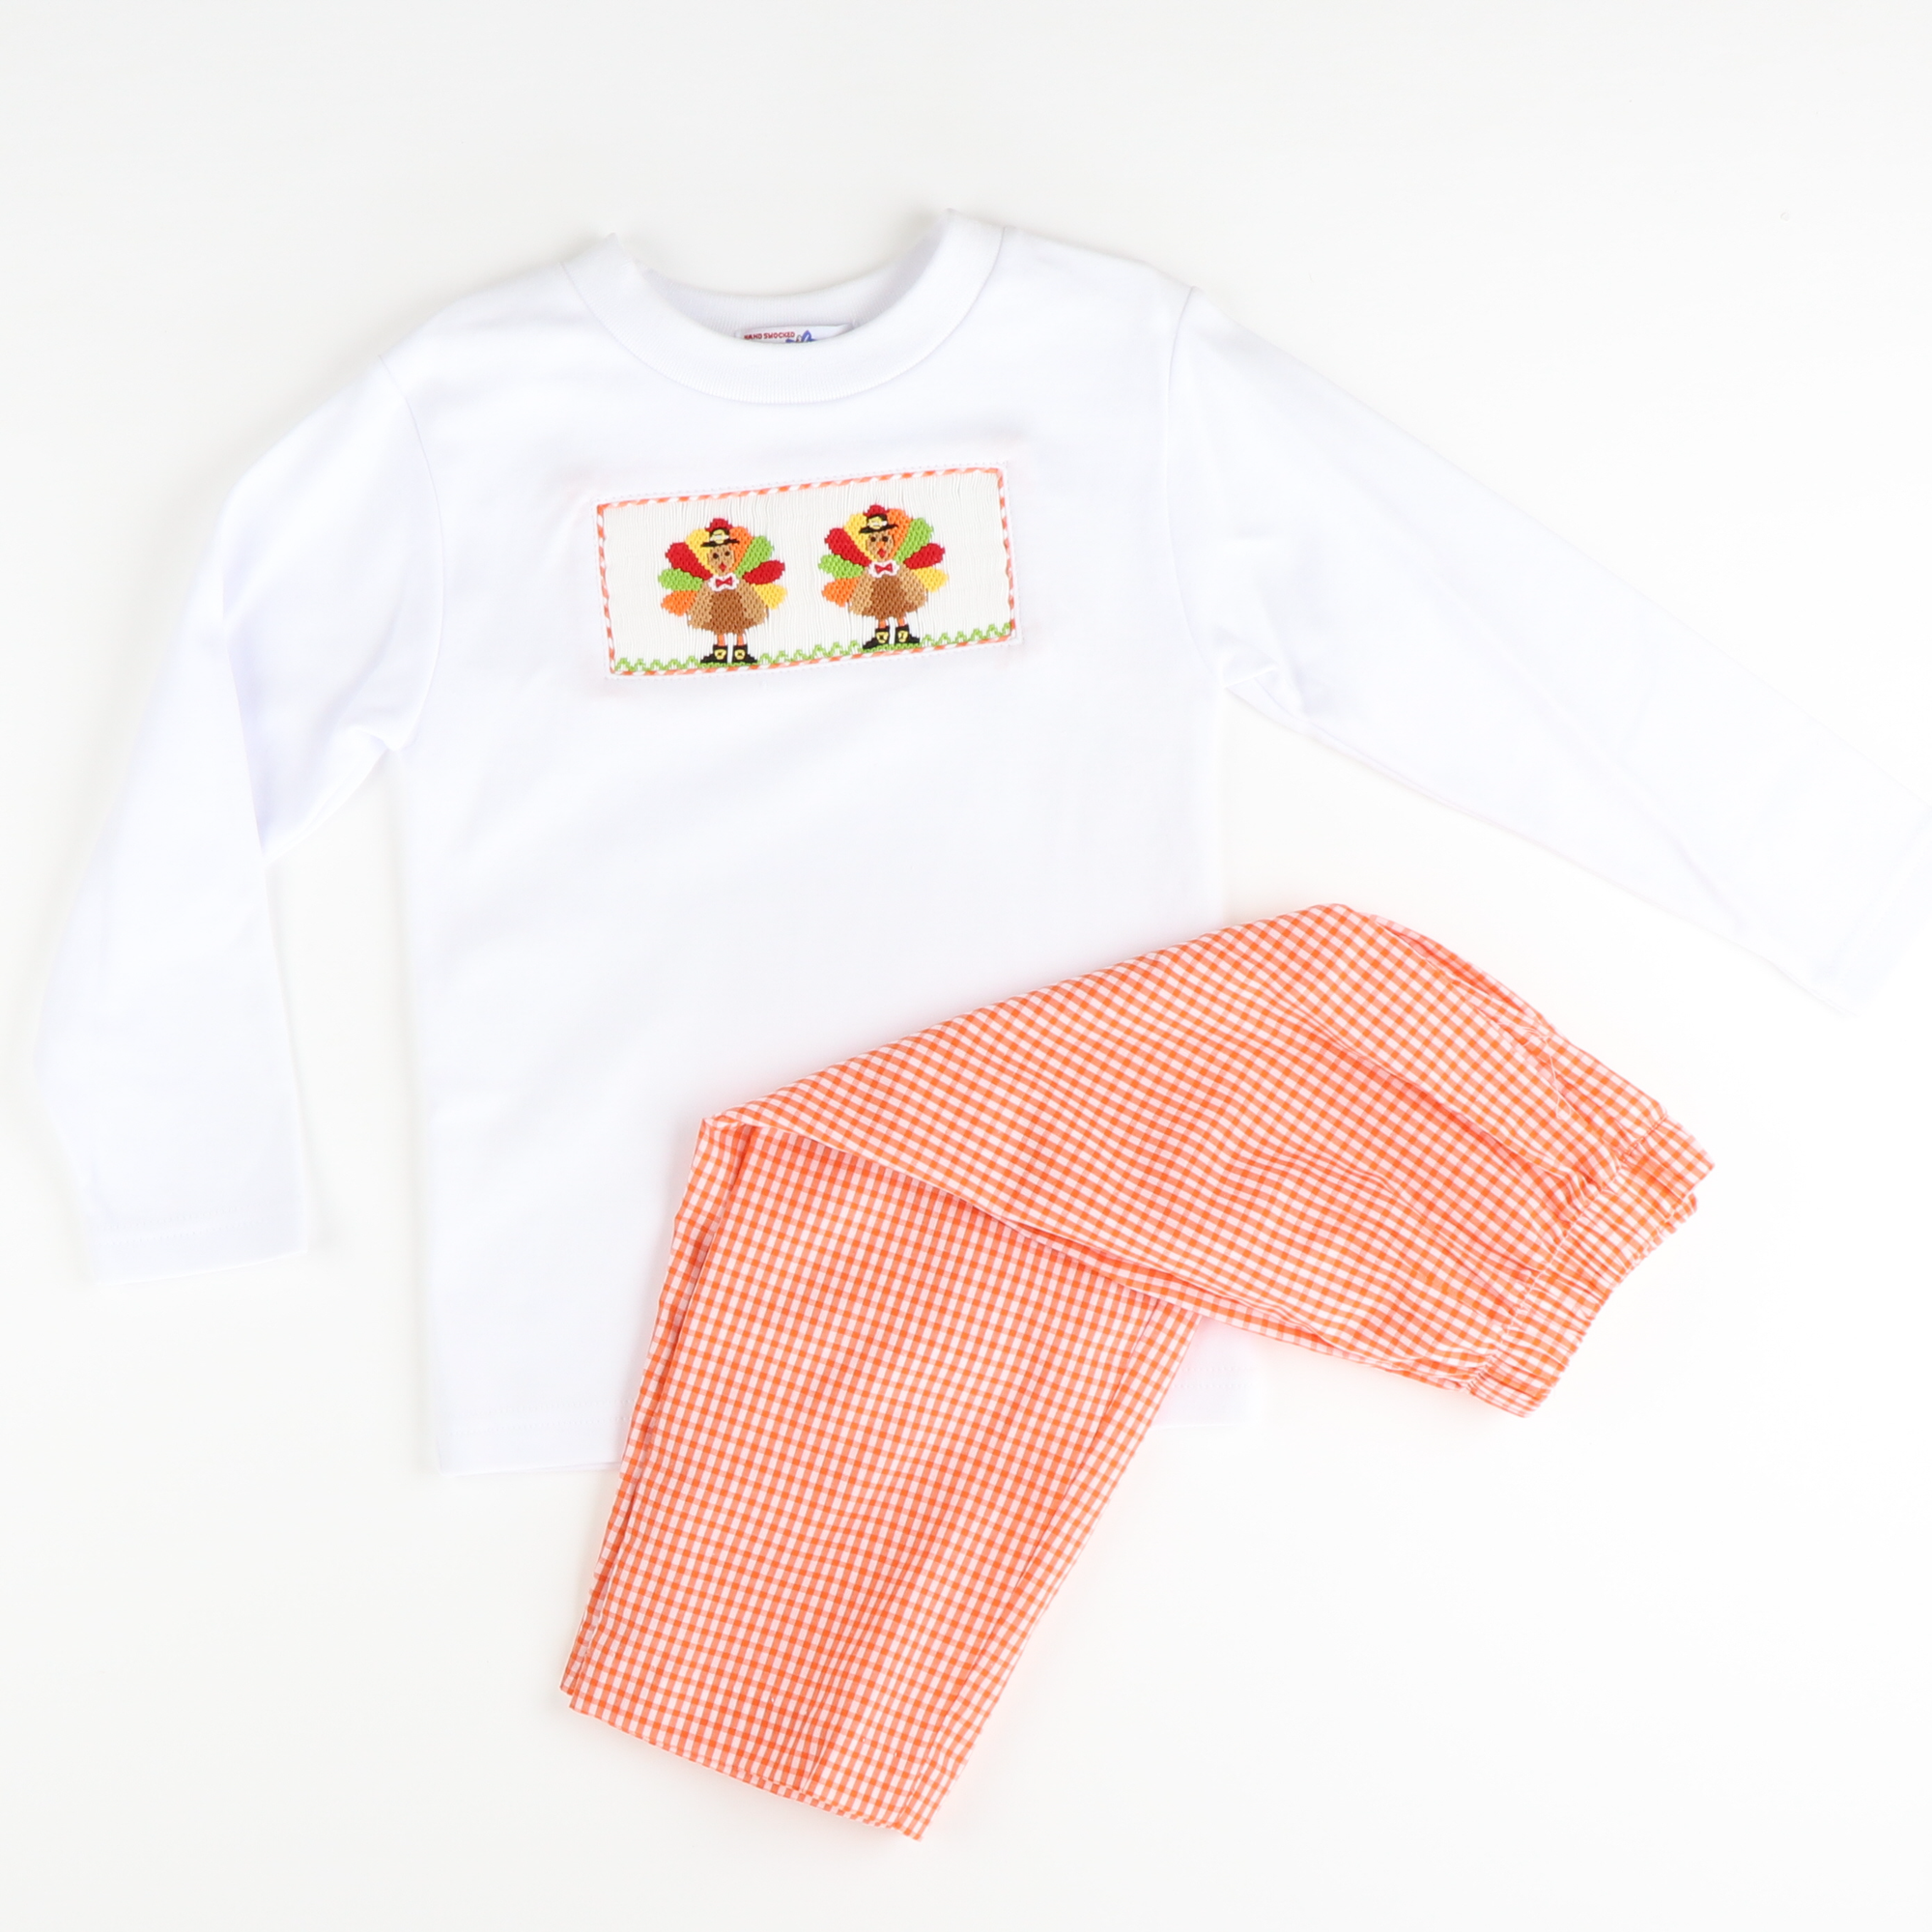 Smocked Turkeys Shirt & Pants Set - Orange Check